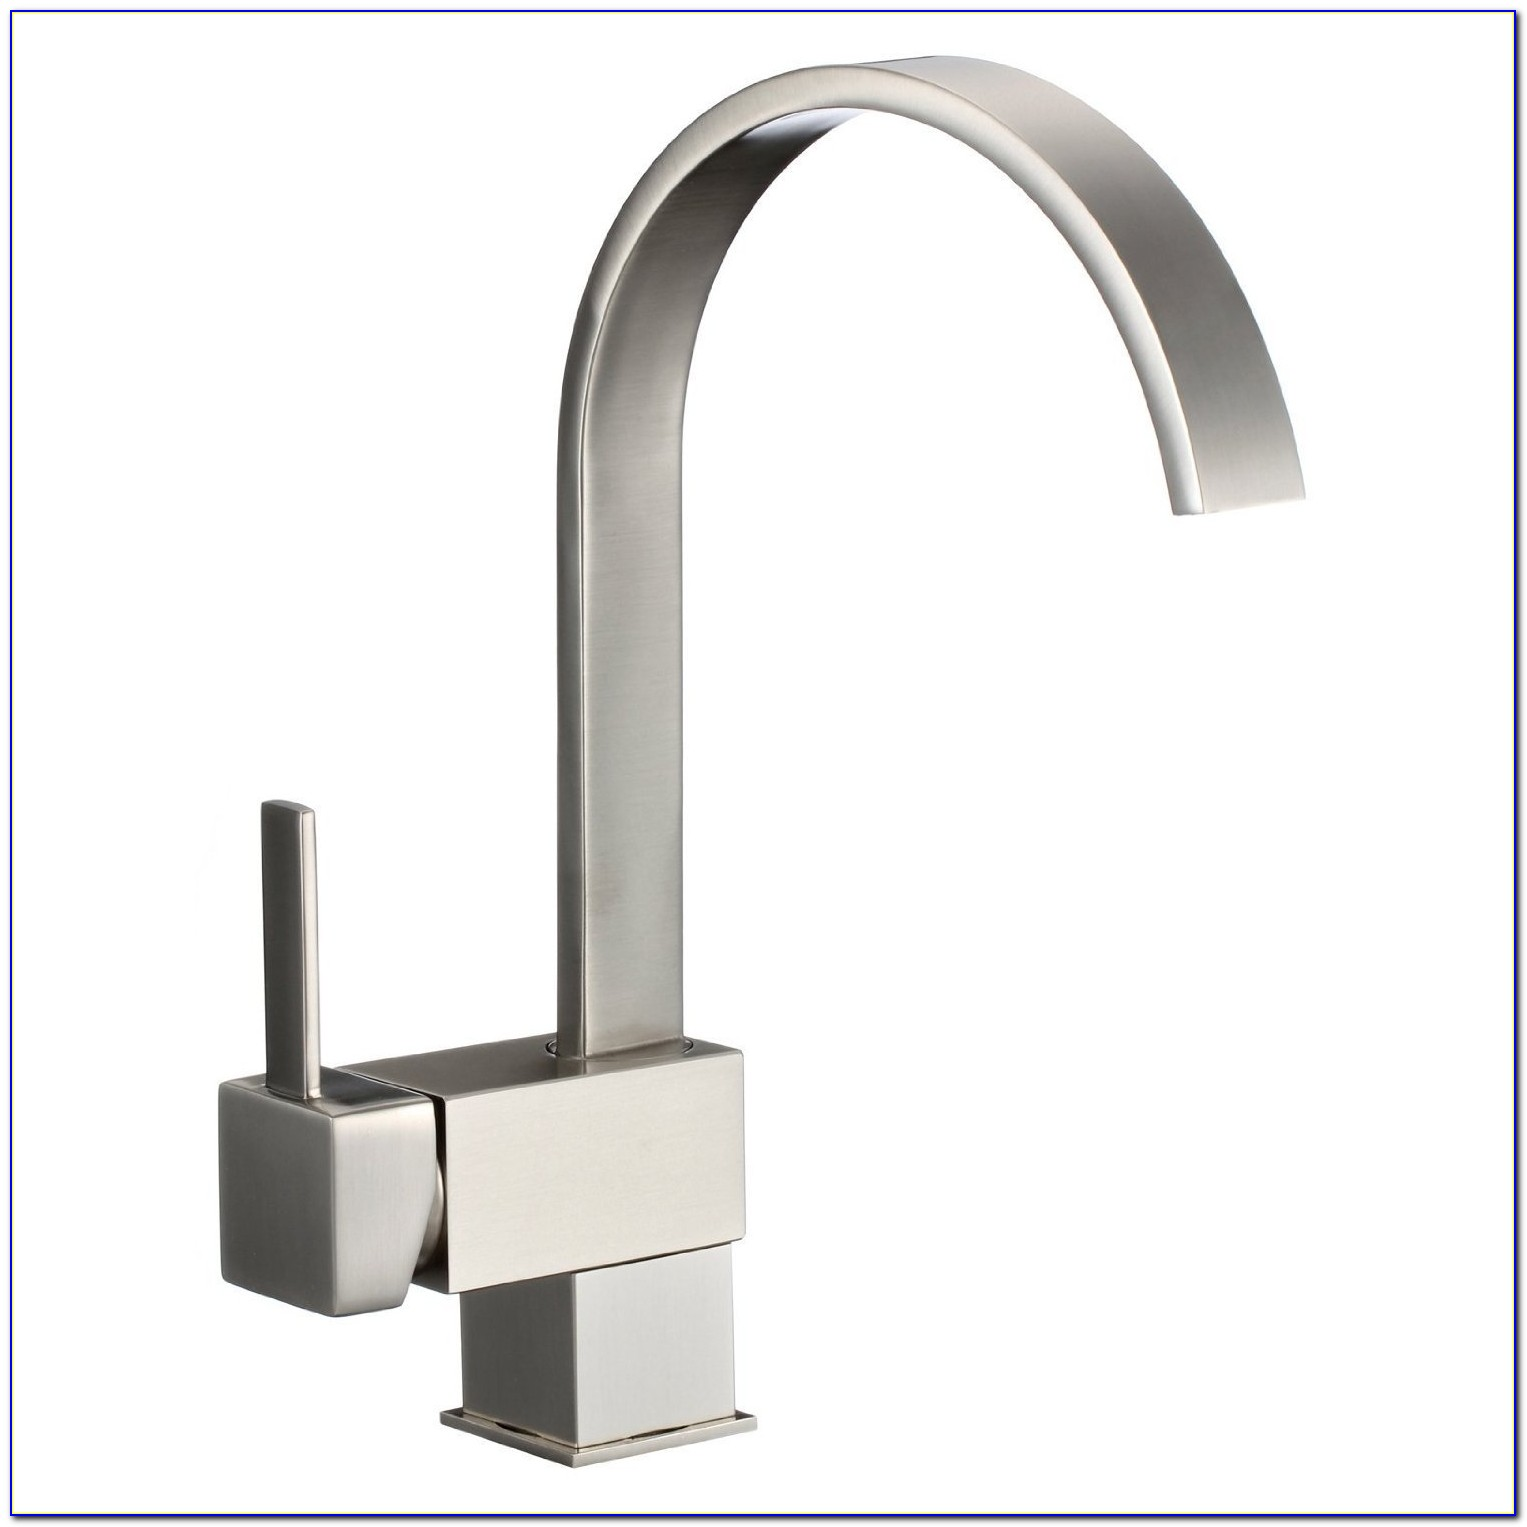 Kohler Faucets For Bar Sinks Kohler Faucets For Bar Sinks All Metal Kitchen Faucets Large Size Of Kitchen Faucetall Metal 1500 X 1500